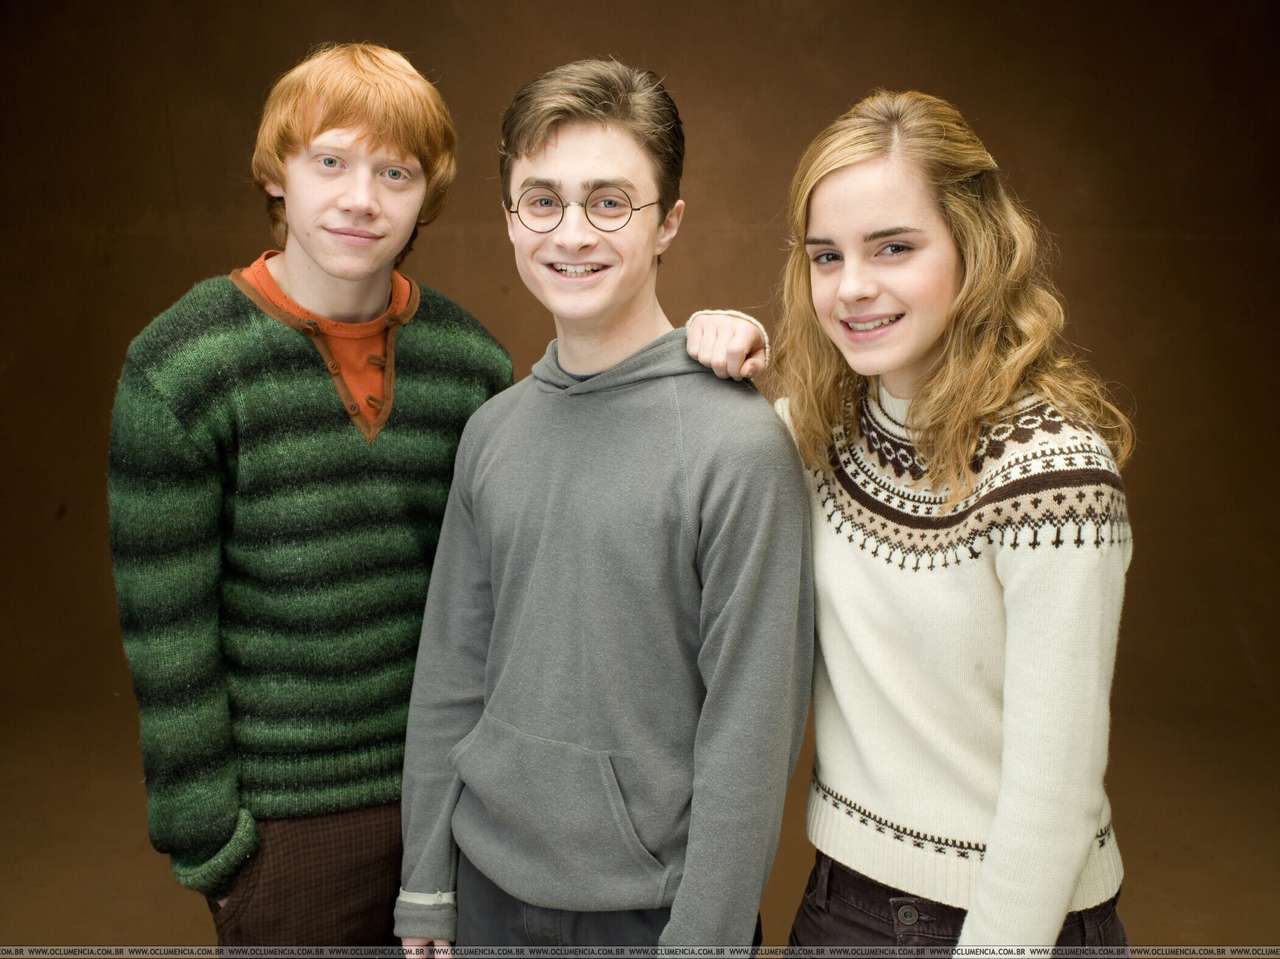 Harry, Ron en Hermione - Hermelien, geboren op 19 september 1979, arriveert op de Hogwarts School of Magic en is vastbesloten iedereen te verbazen met haar vindingrijkheid en ijver. Hoewel ze helemaal niet populair is, slaagt (12×9)